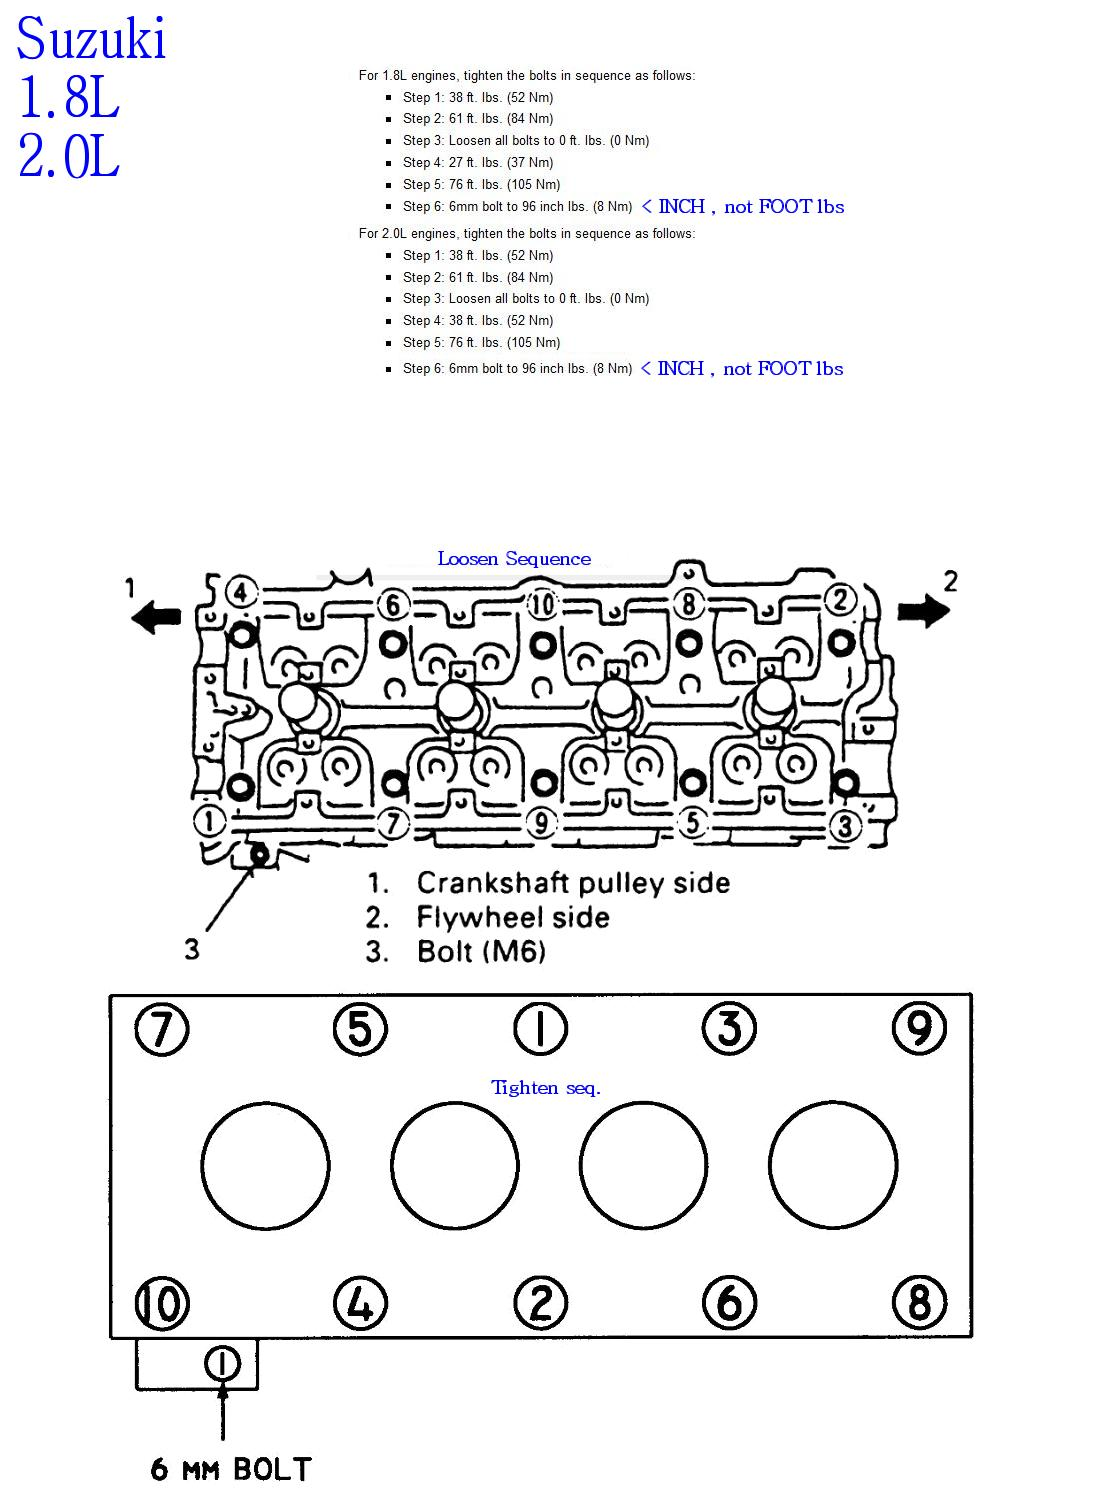 97 Geo Fuse Box Diagram on 1995 geo prizm fuse box diagram